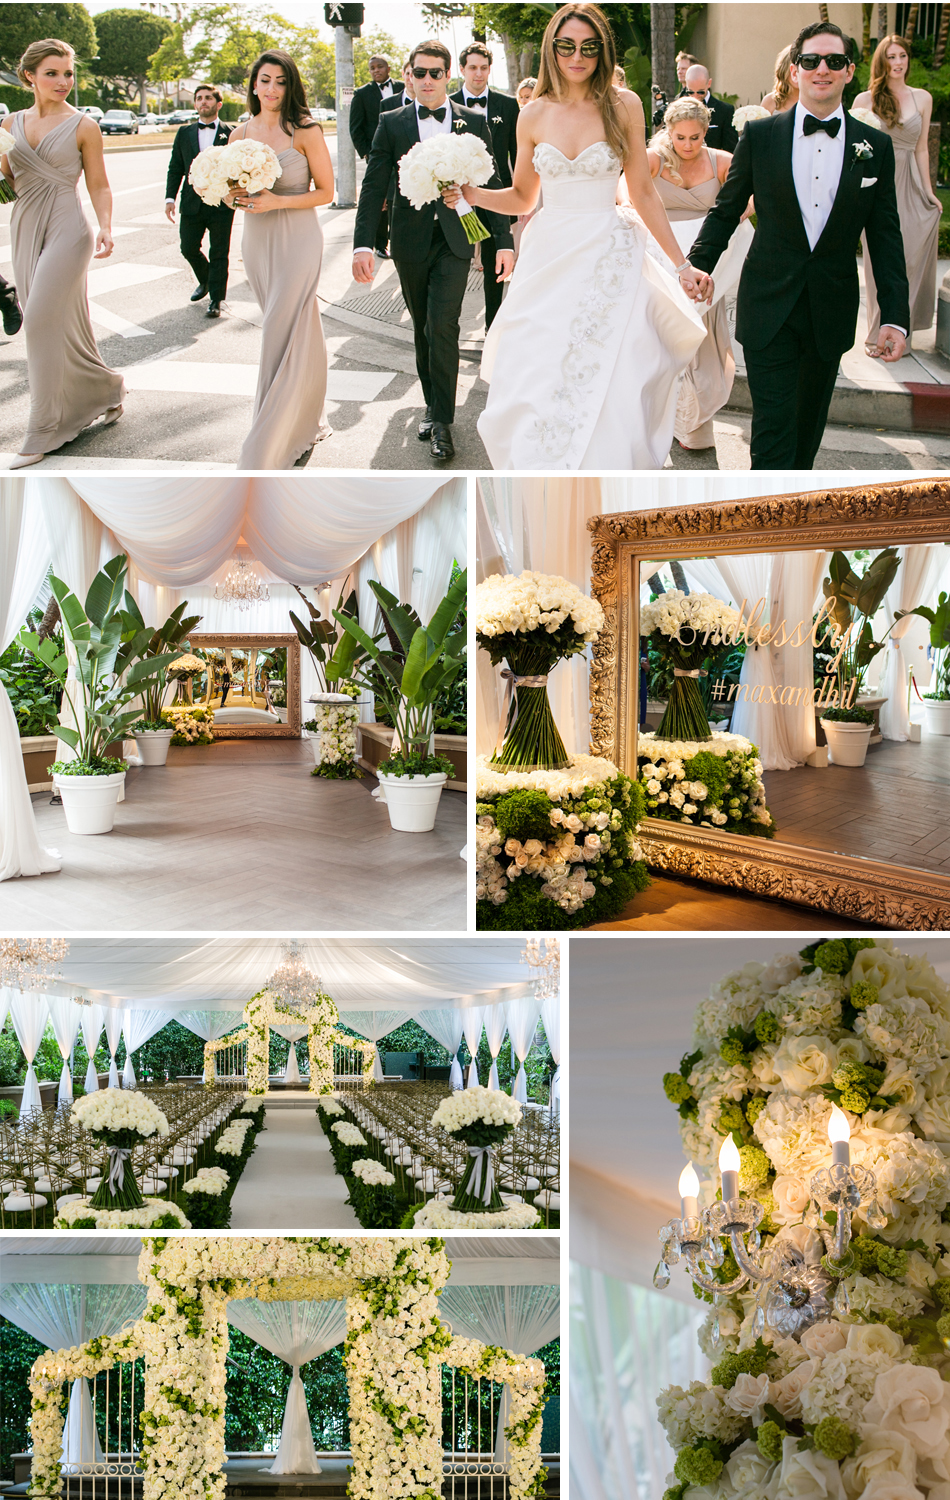 internationaleventcompany.com | International Event Company Los Angeles Wedding Planner and Designer | Weddings at The Four Seasons | Luxury Event Planners in Southern California _ (1).jpg